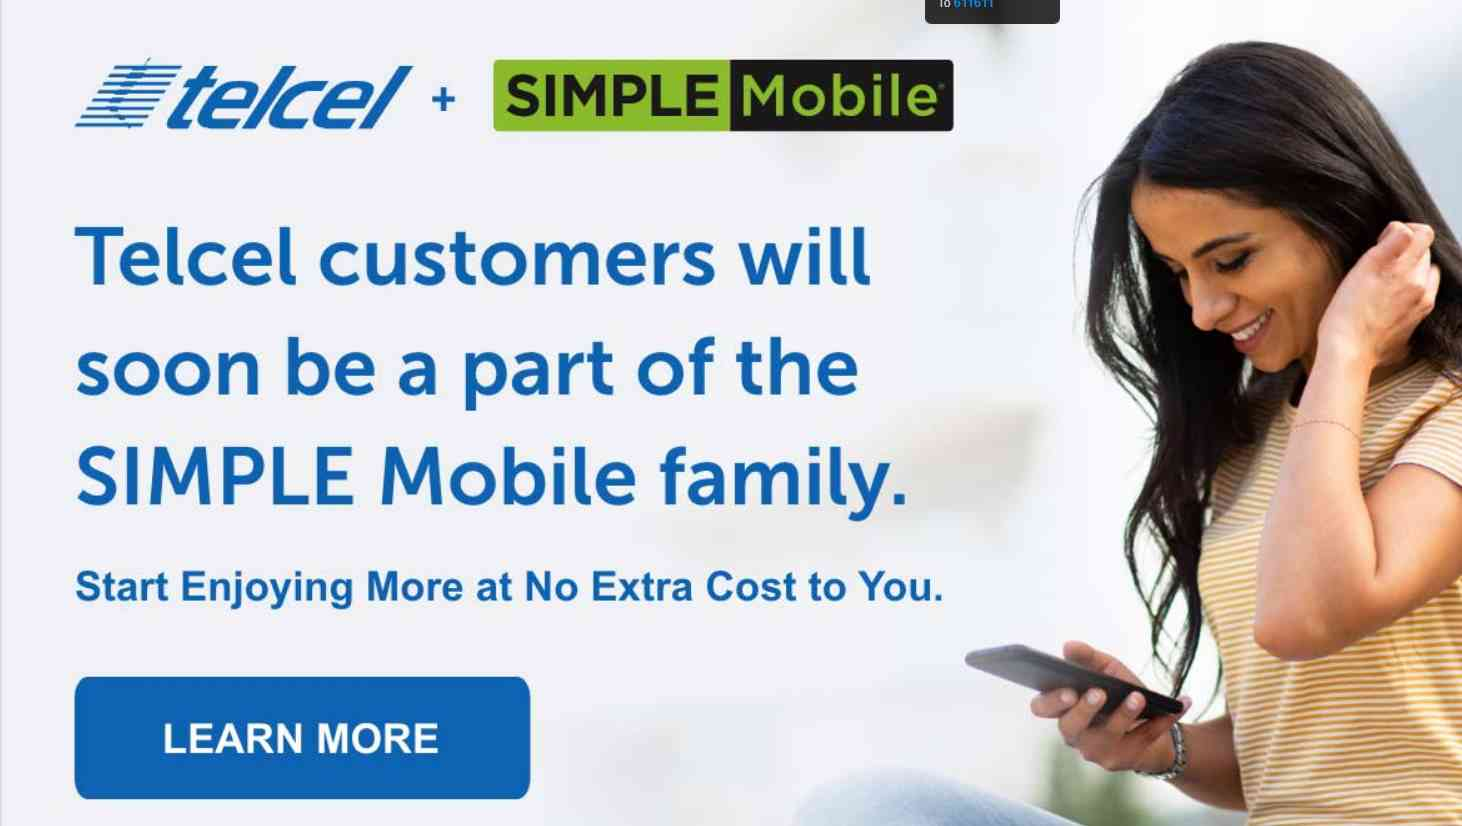 Telcel's Website Proclaims That It Will Fold Into Simple Mobile